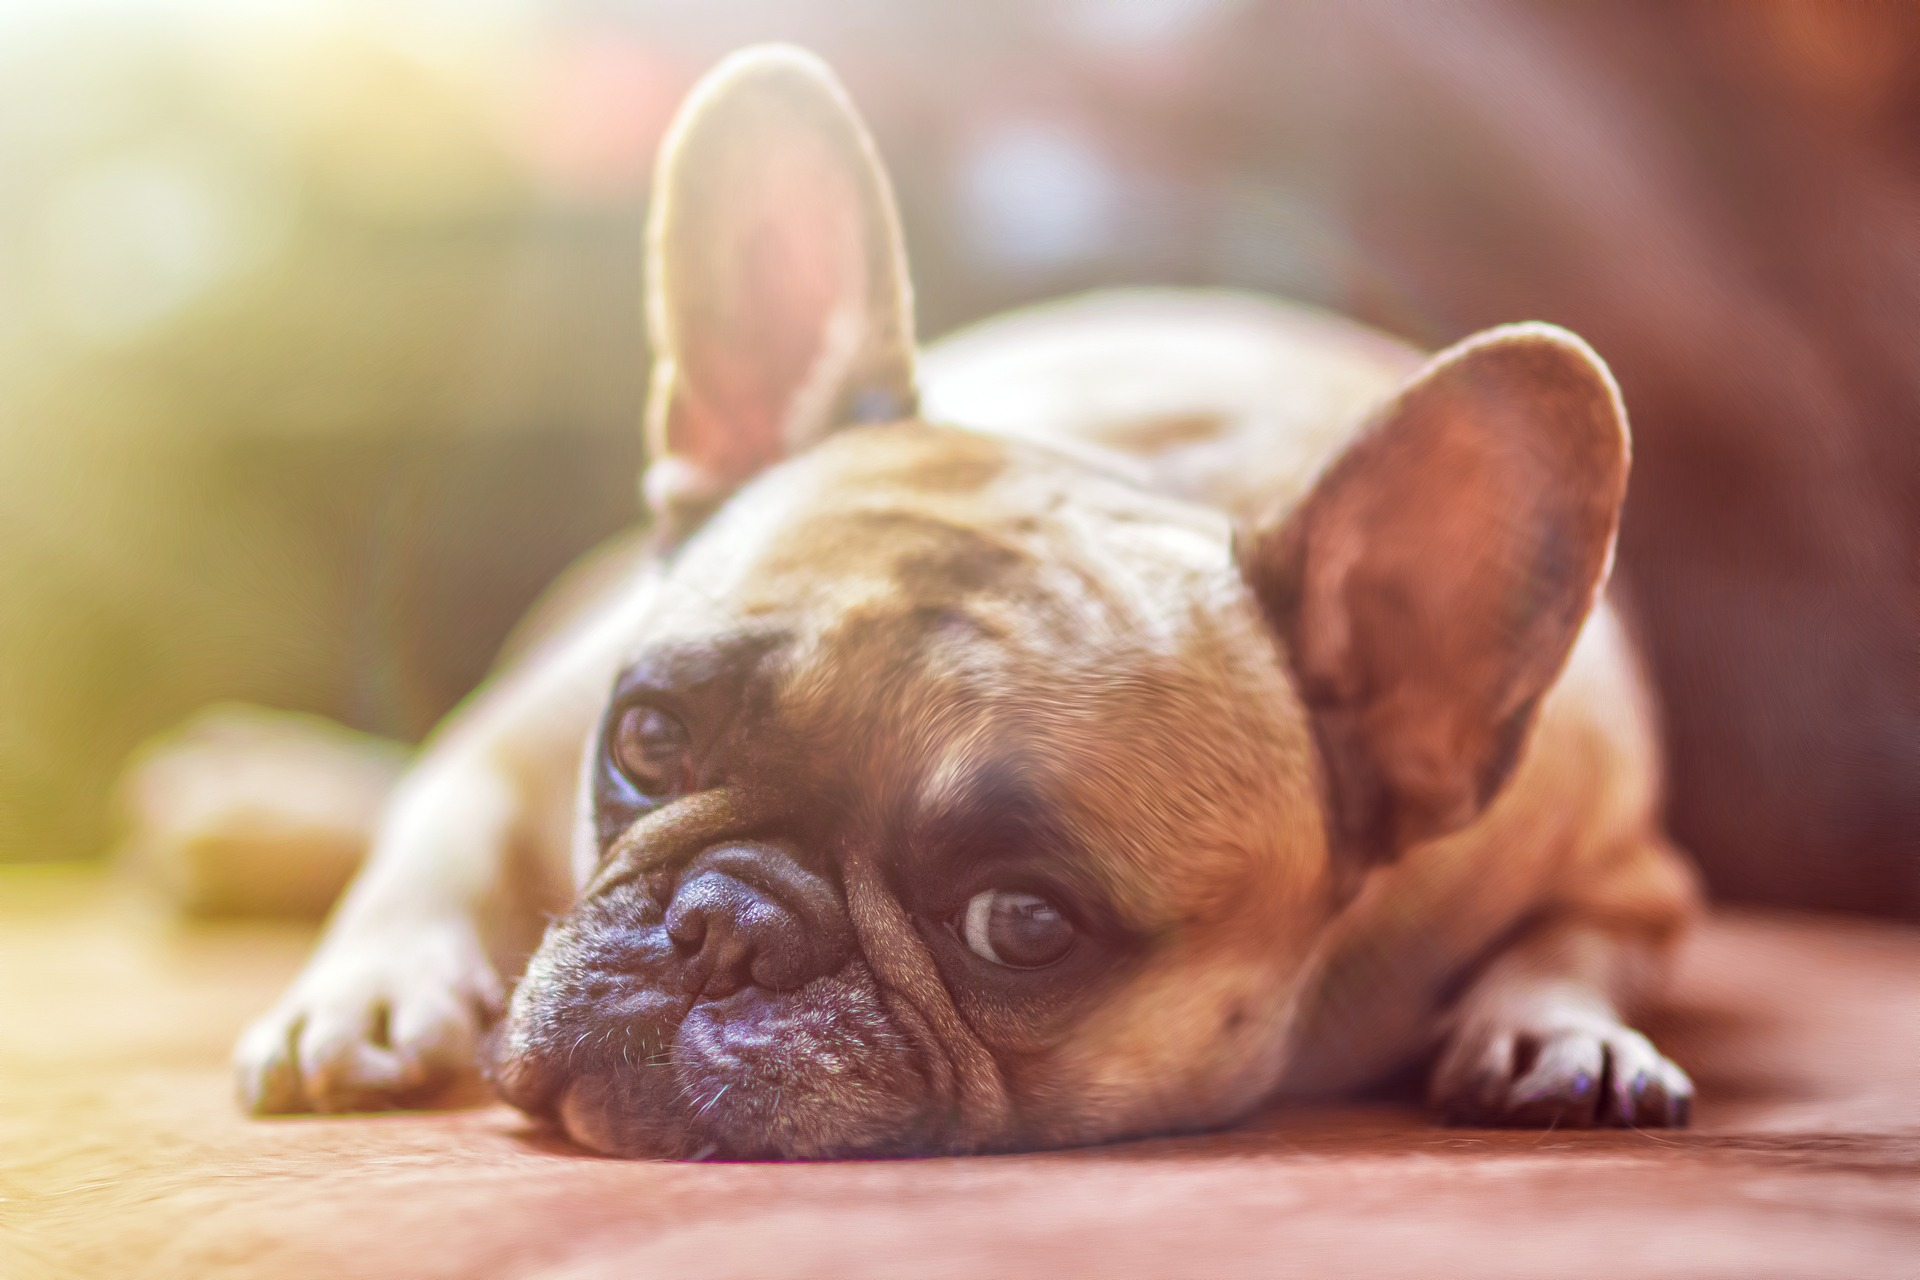 All About Intestinal Worms in Dogs - Find Out More